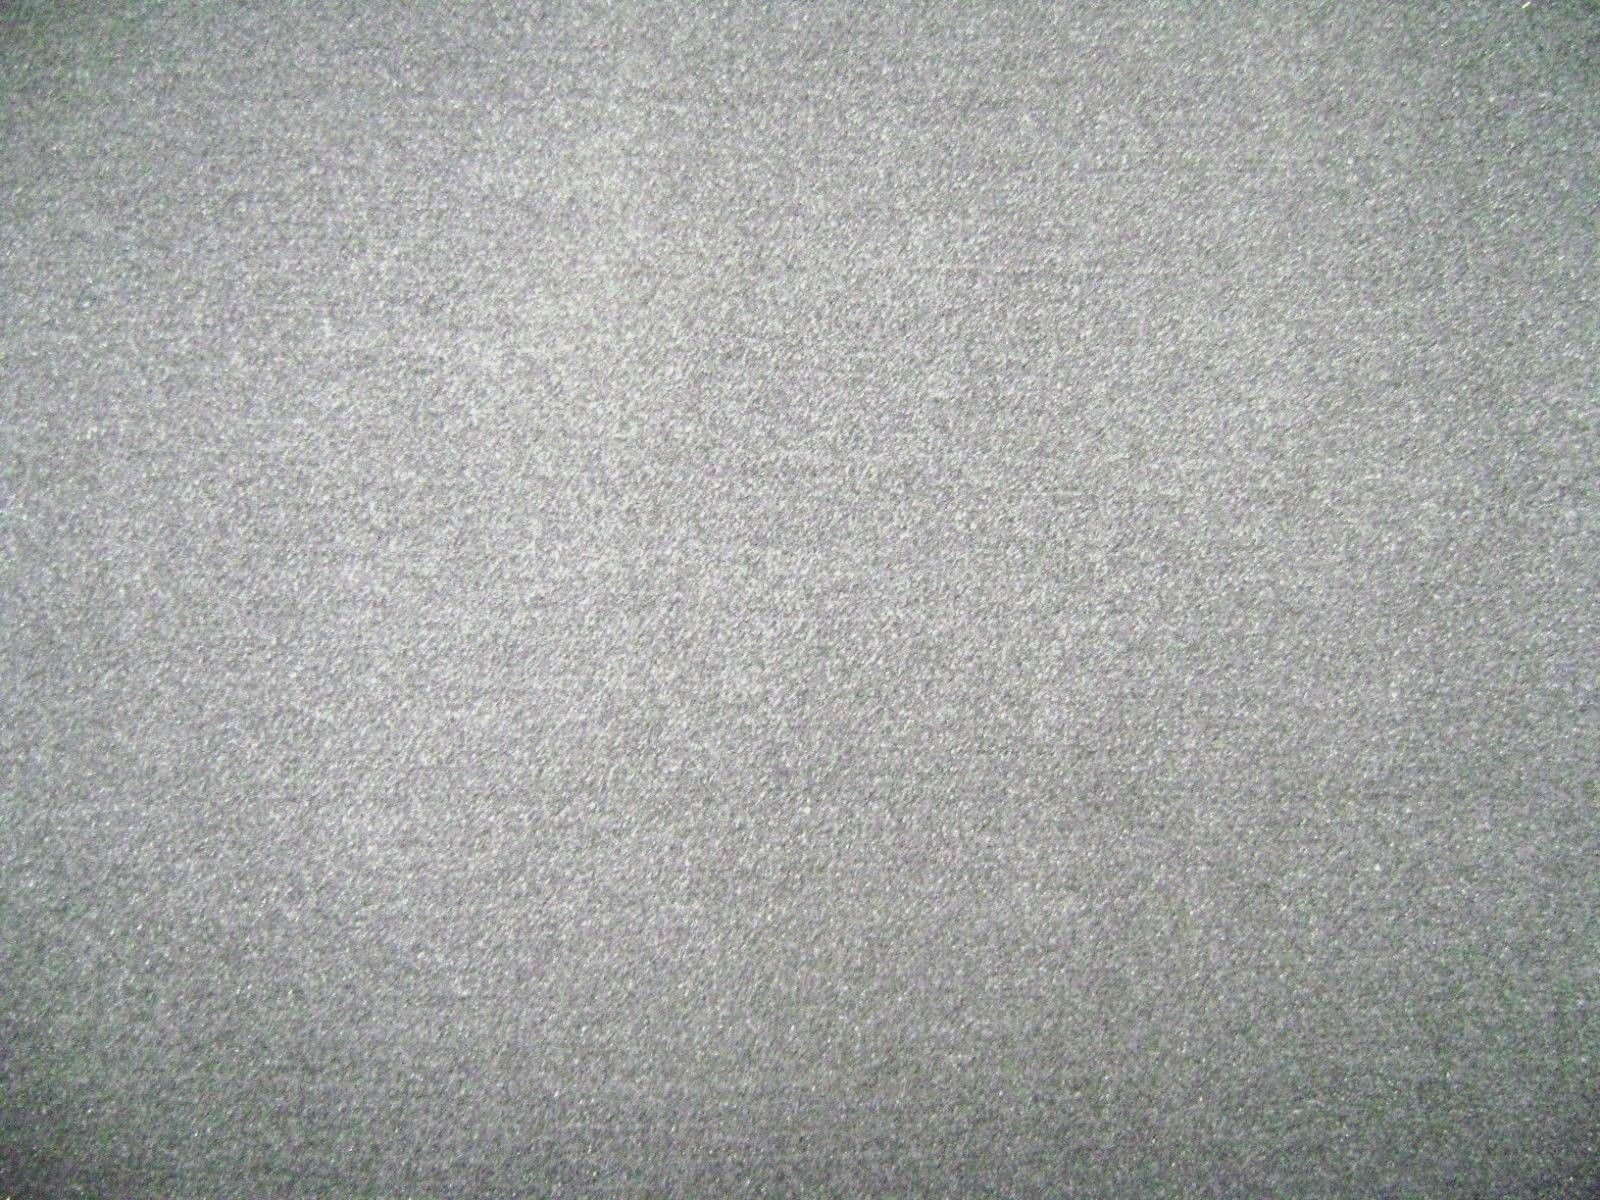 4ft x 15ft Grey Speaker Box Carpet + Spray Adhesive by ZXPC (Image #2)